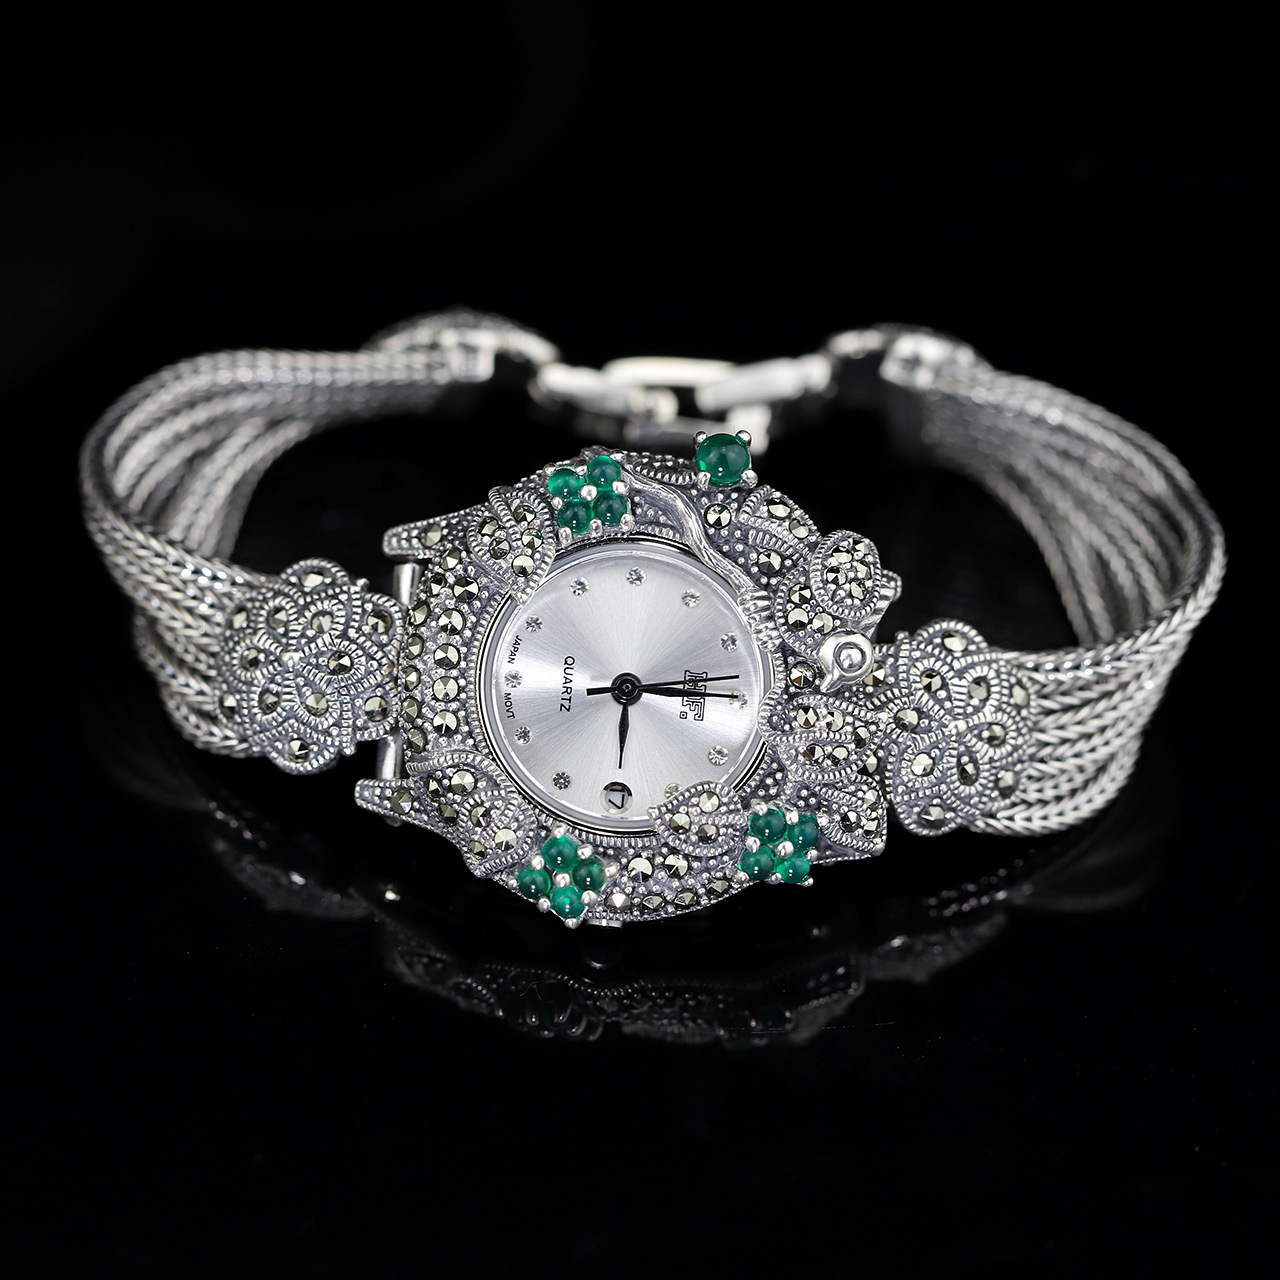 цена на jewelry S925 wholesale silver jewelry accessories wholesale factory direct selling Thai silver Seiko Bracelet Watch